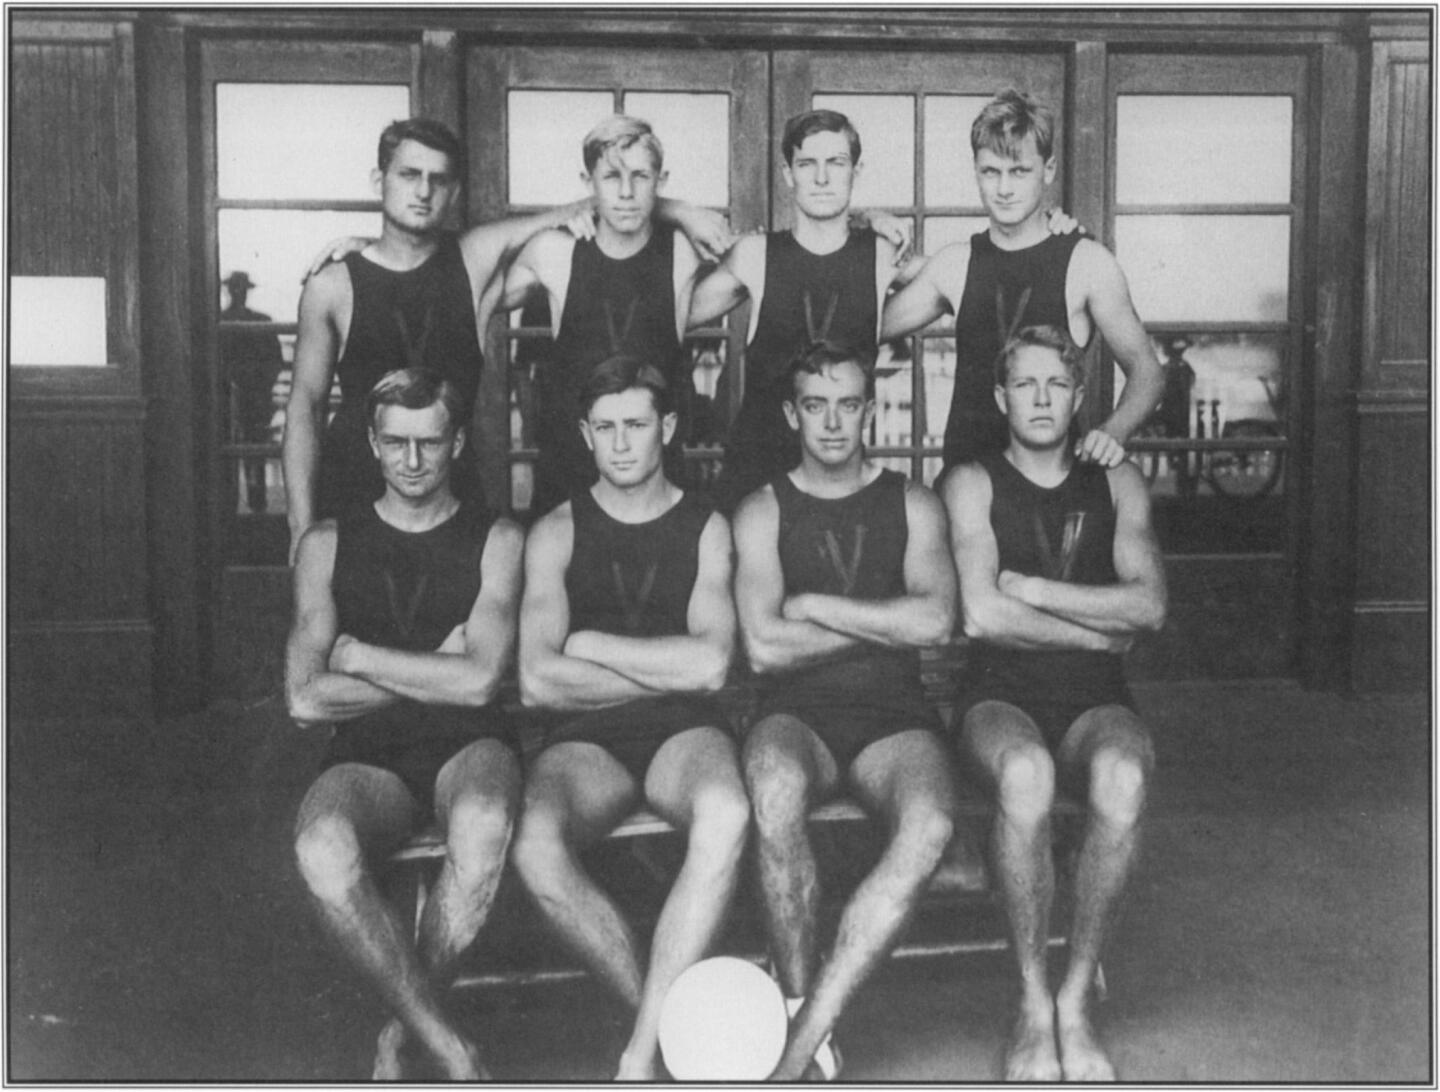 George Freeth encouraged the playing of water polo to condition members of the Venice Volun teer Lifesaving Corps for the rigors of ocean swimming.